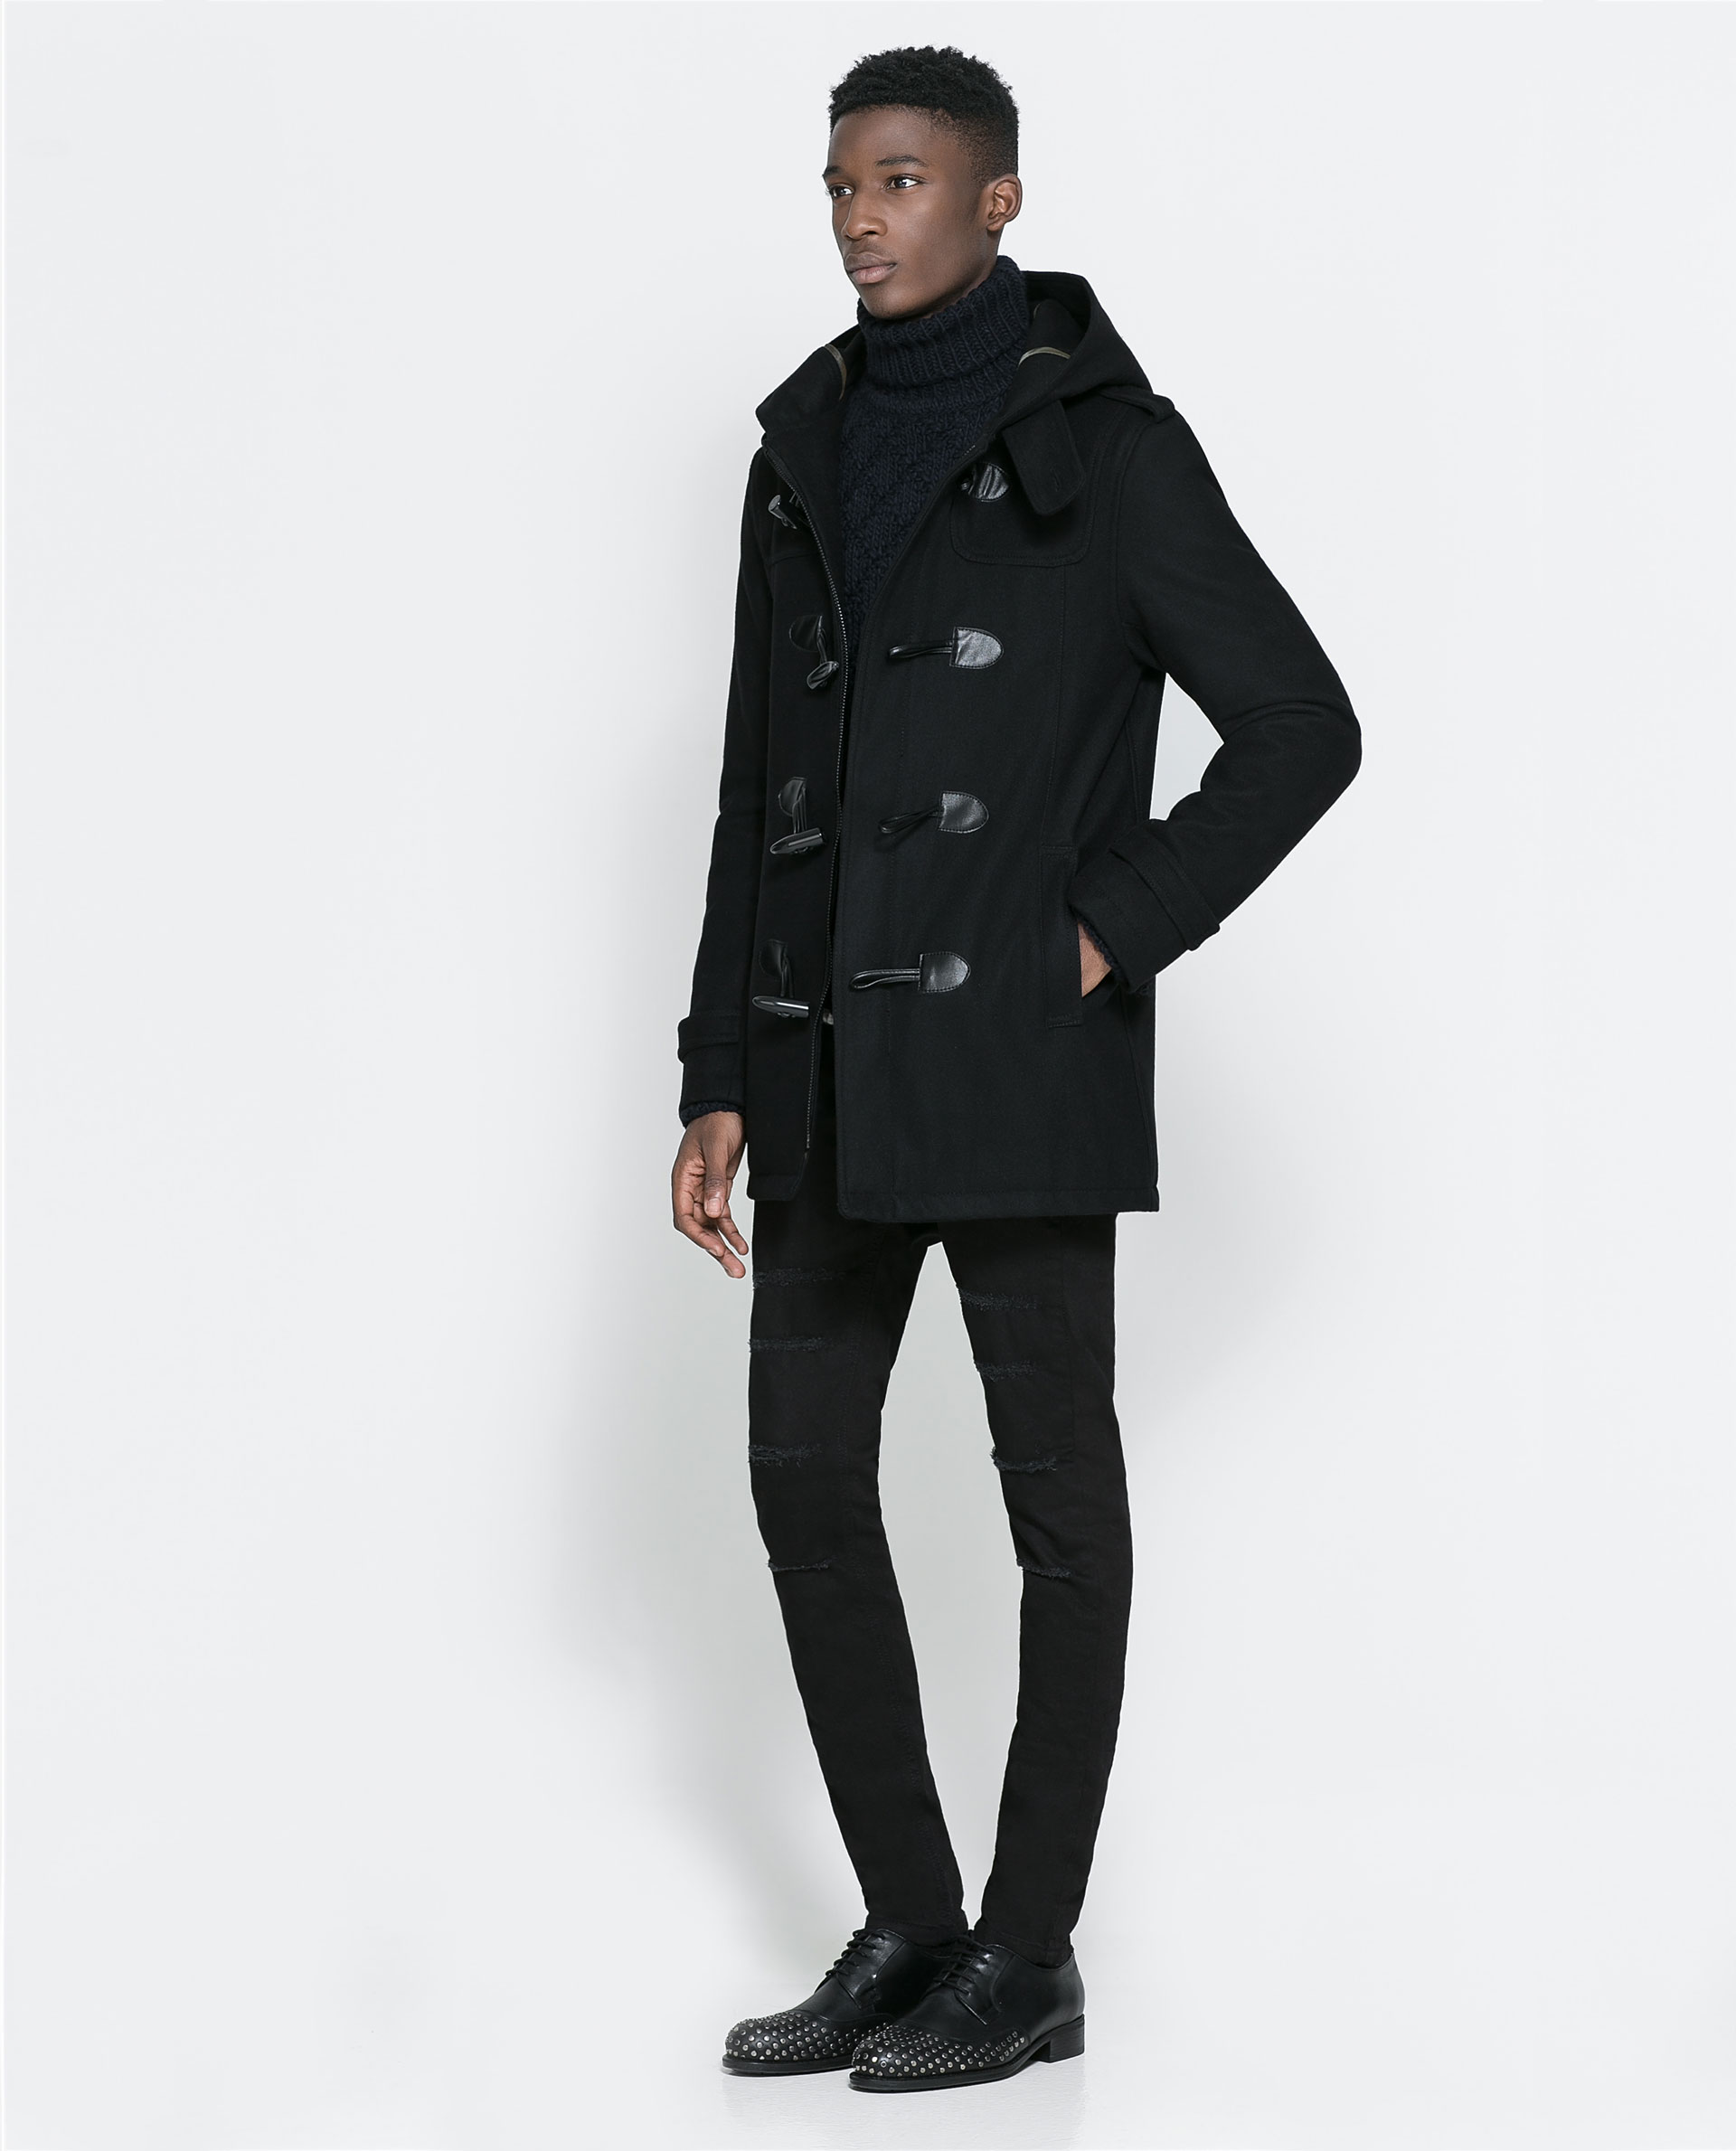 Mens coat sale zara – Modern fashion jacket photo blog